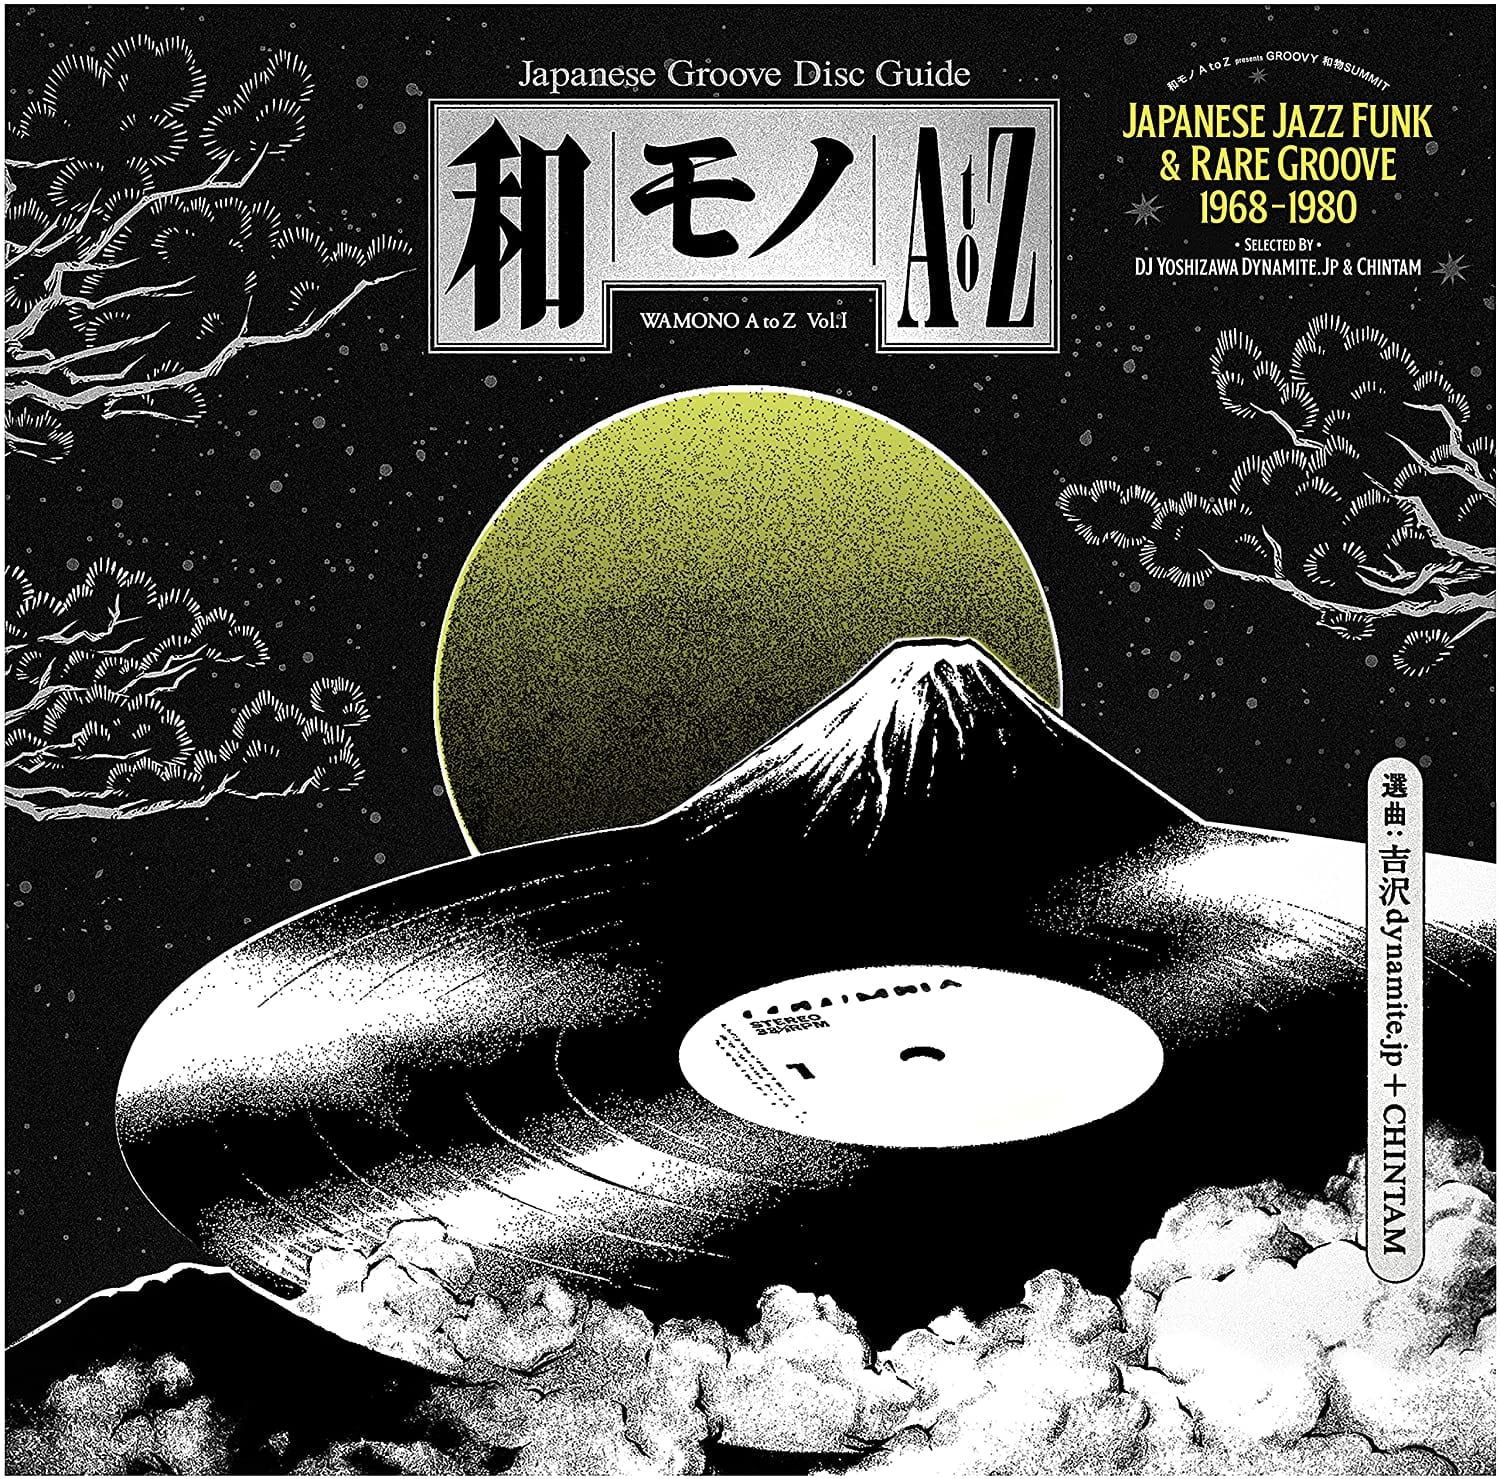 Various Artists - Wamono A to Z Vol. 1: Japanese Jazz Funk & Rare Groove 1968-1980 [LP] (180 Gram) - Urban Vinyl | Records, Headphones, and more.